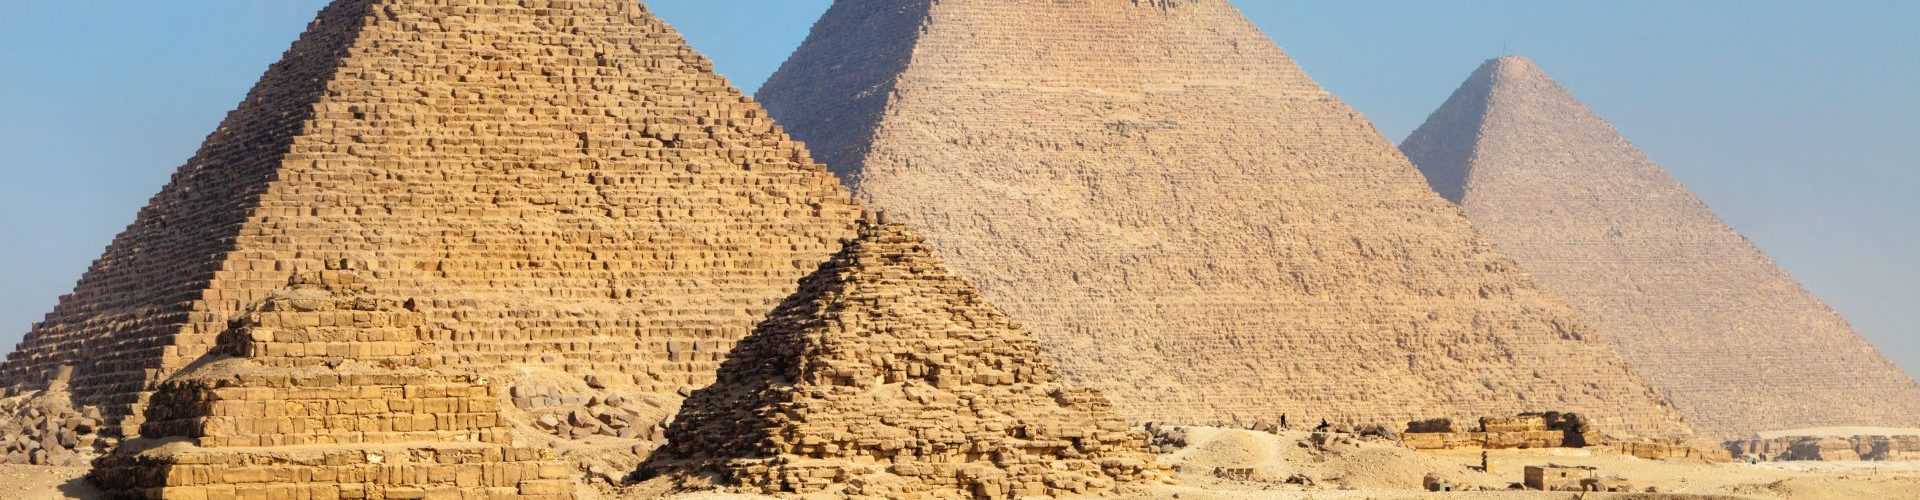 Egypte pyramises